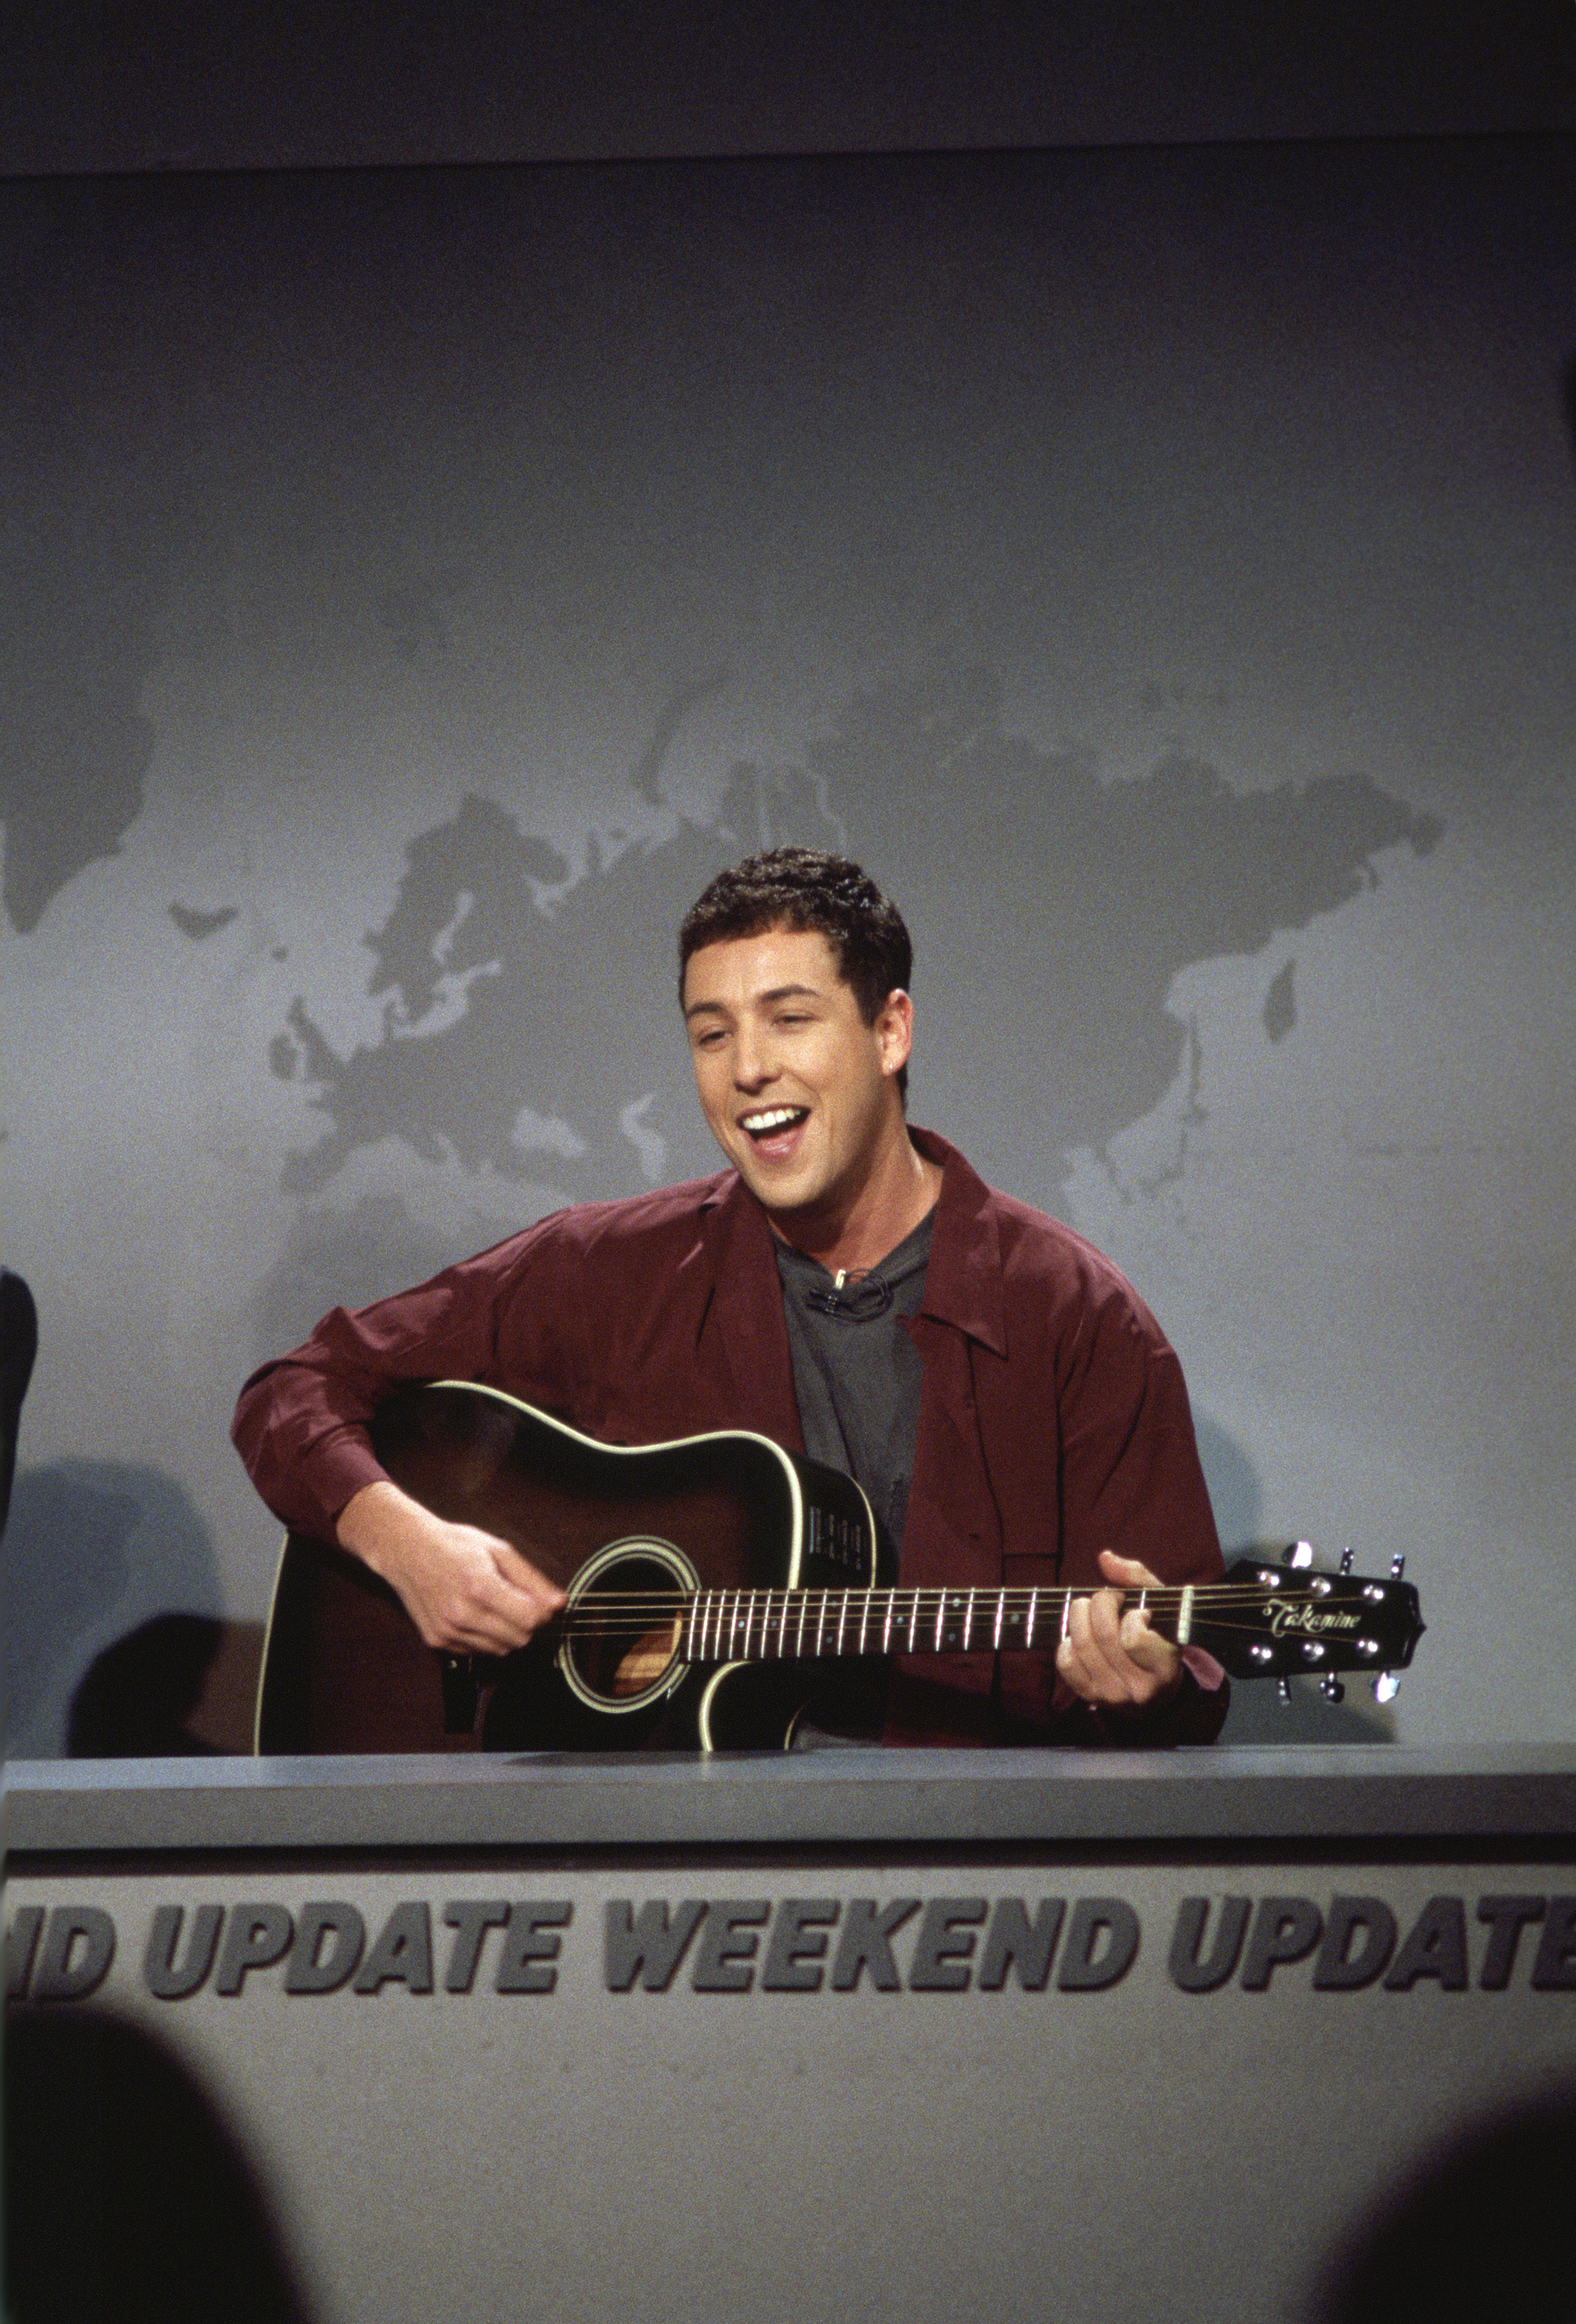 Why Adam Sandler's 'Thanksgiving Song' Is a Holiday Classic